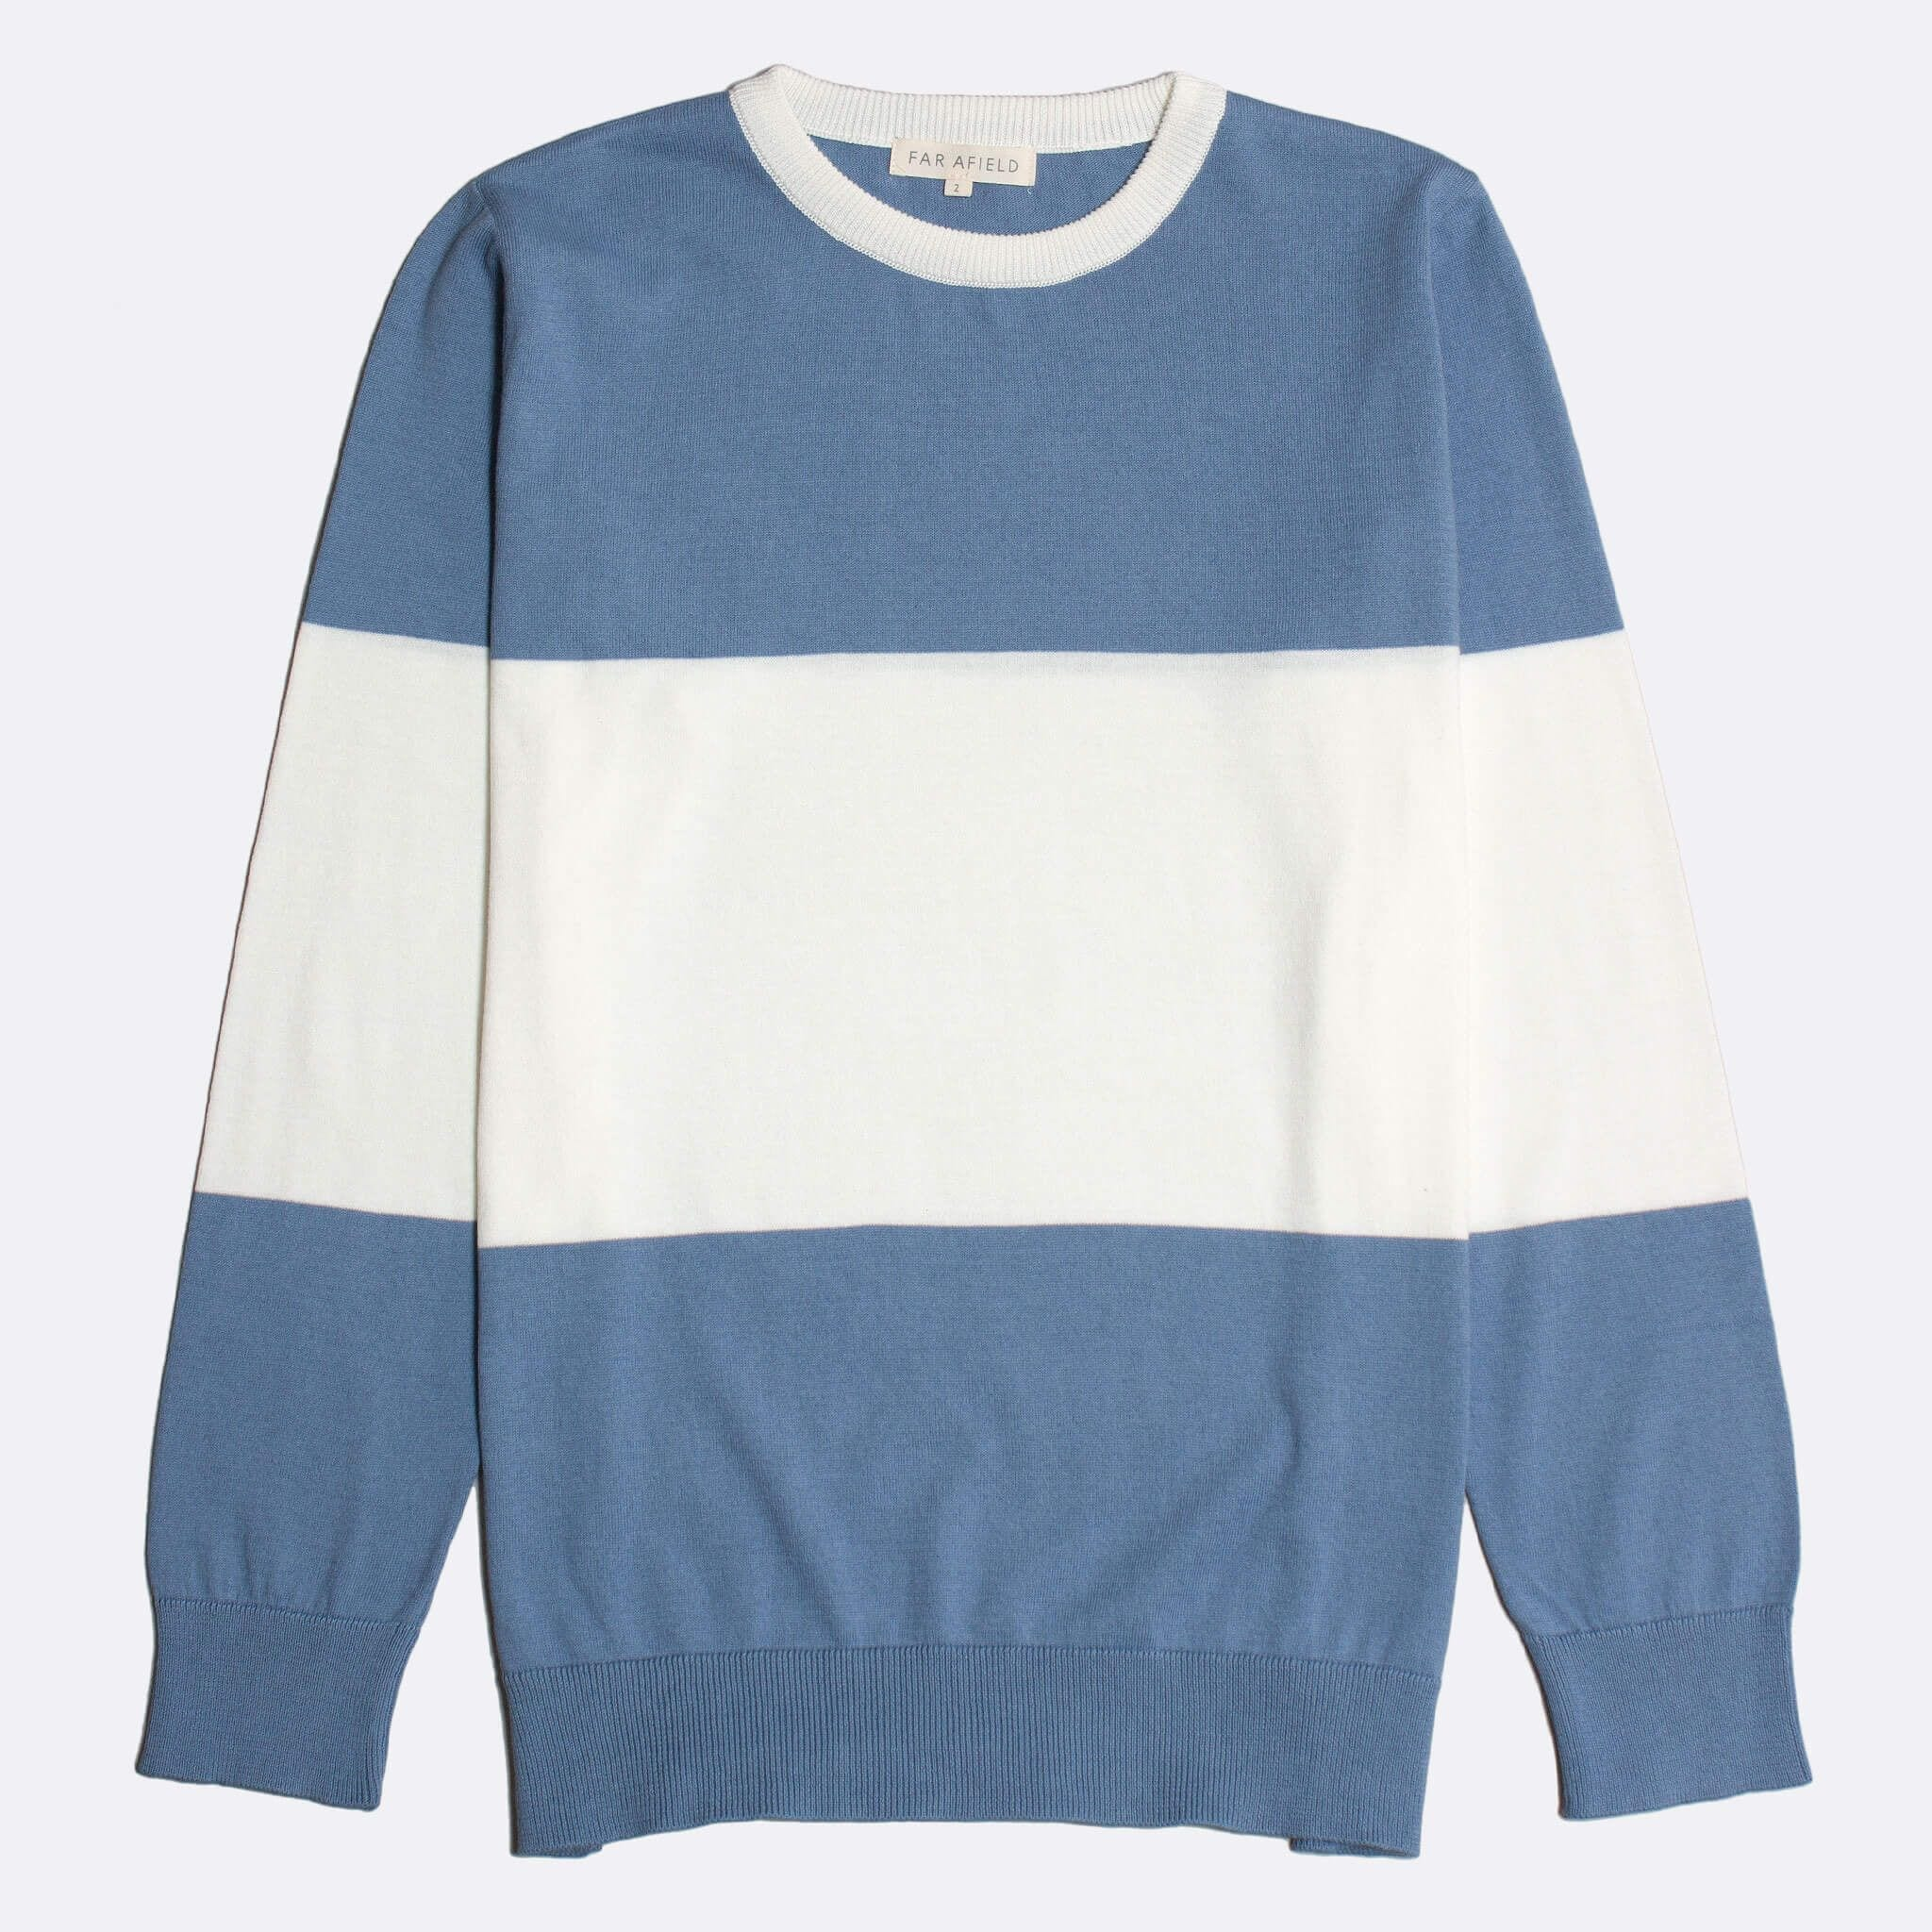 Far Afield Nussa Crew Neck Knit a Stonewash Blue / White BCI Cotton Classic Fabric Jumper Casual